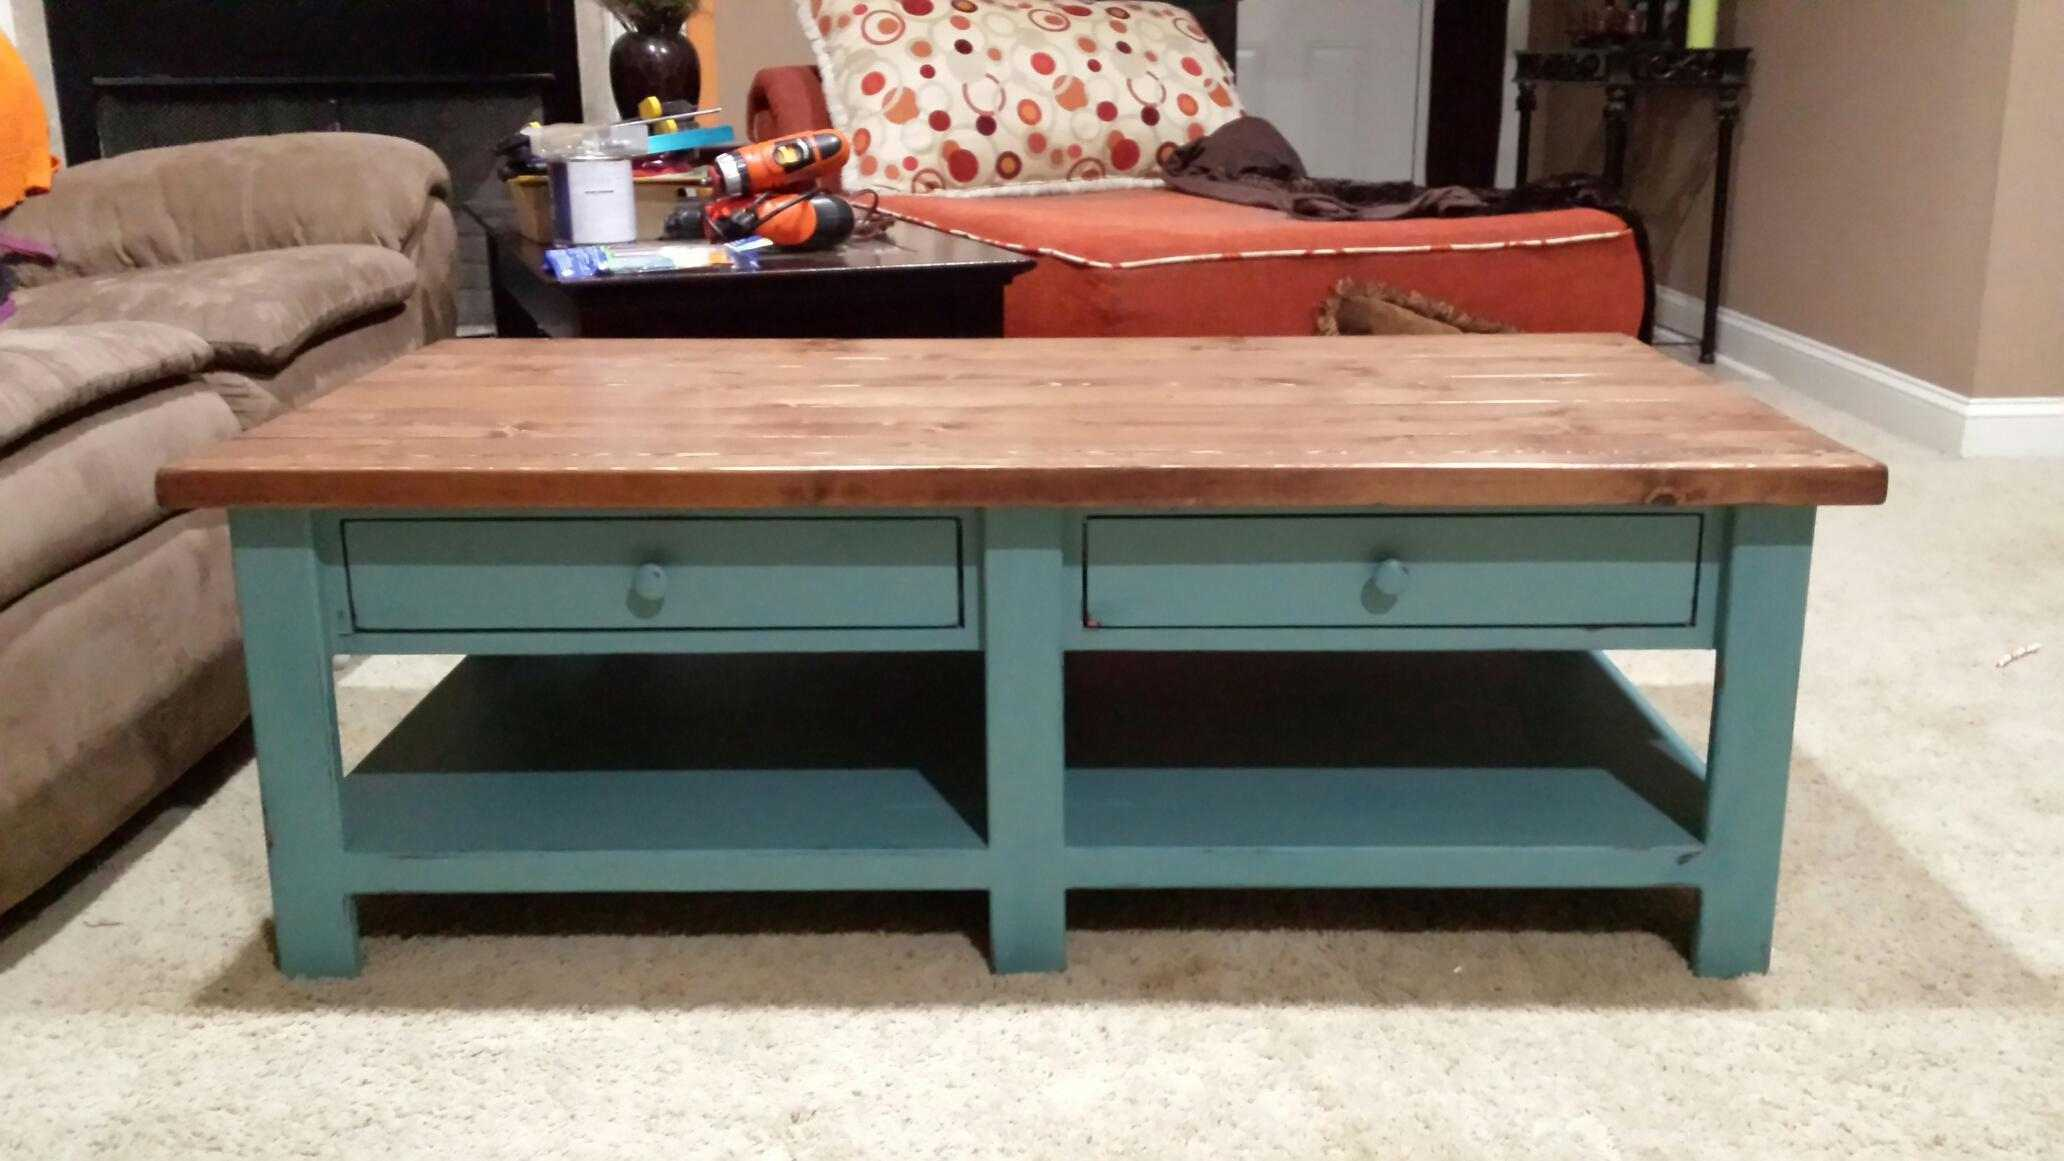 free diy coffee table plans you can build today ana white benchright accent with two drawers and lower bench front entrance decor trunk style silver grey tablecloth bathroom basin